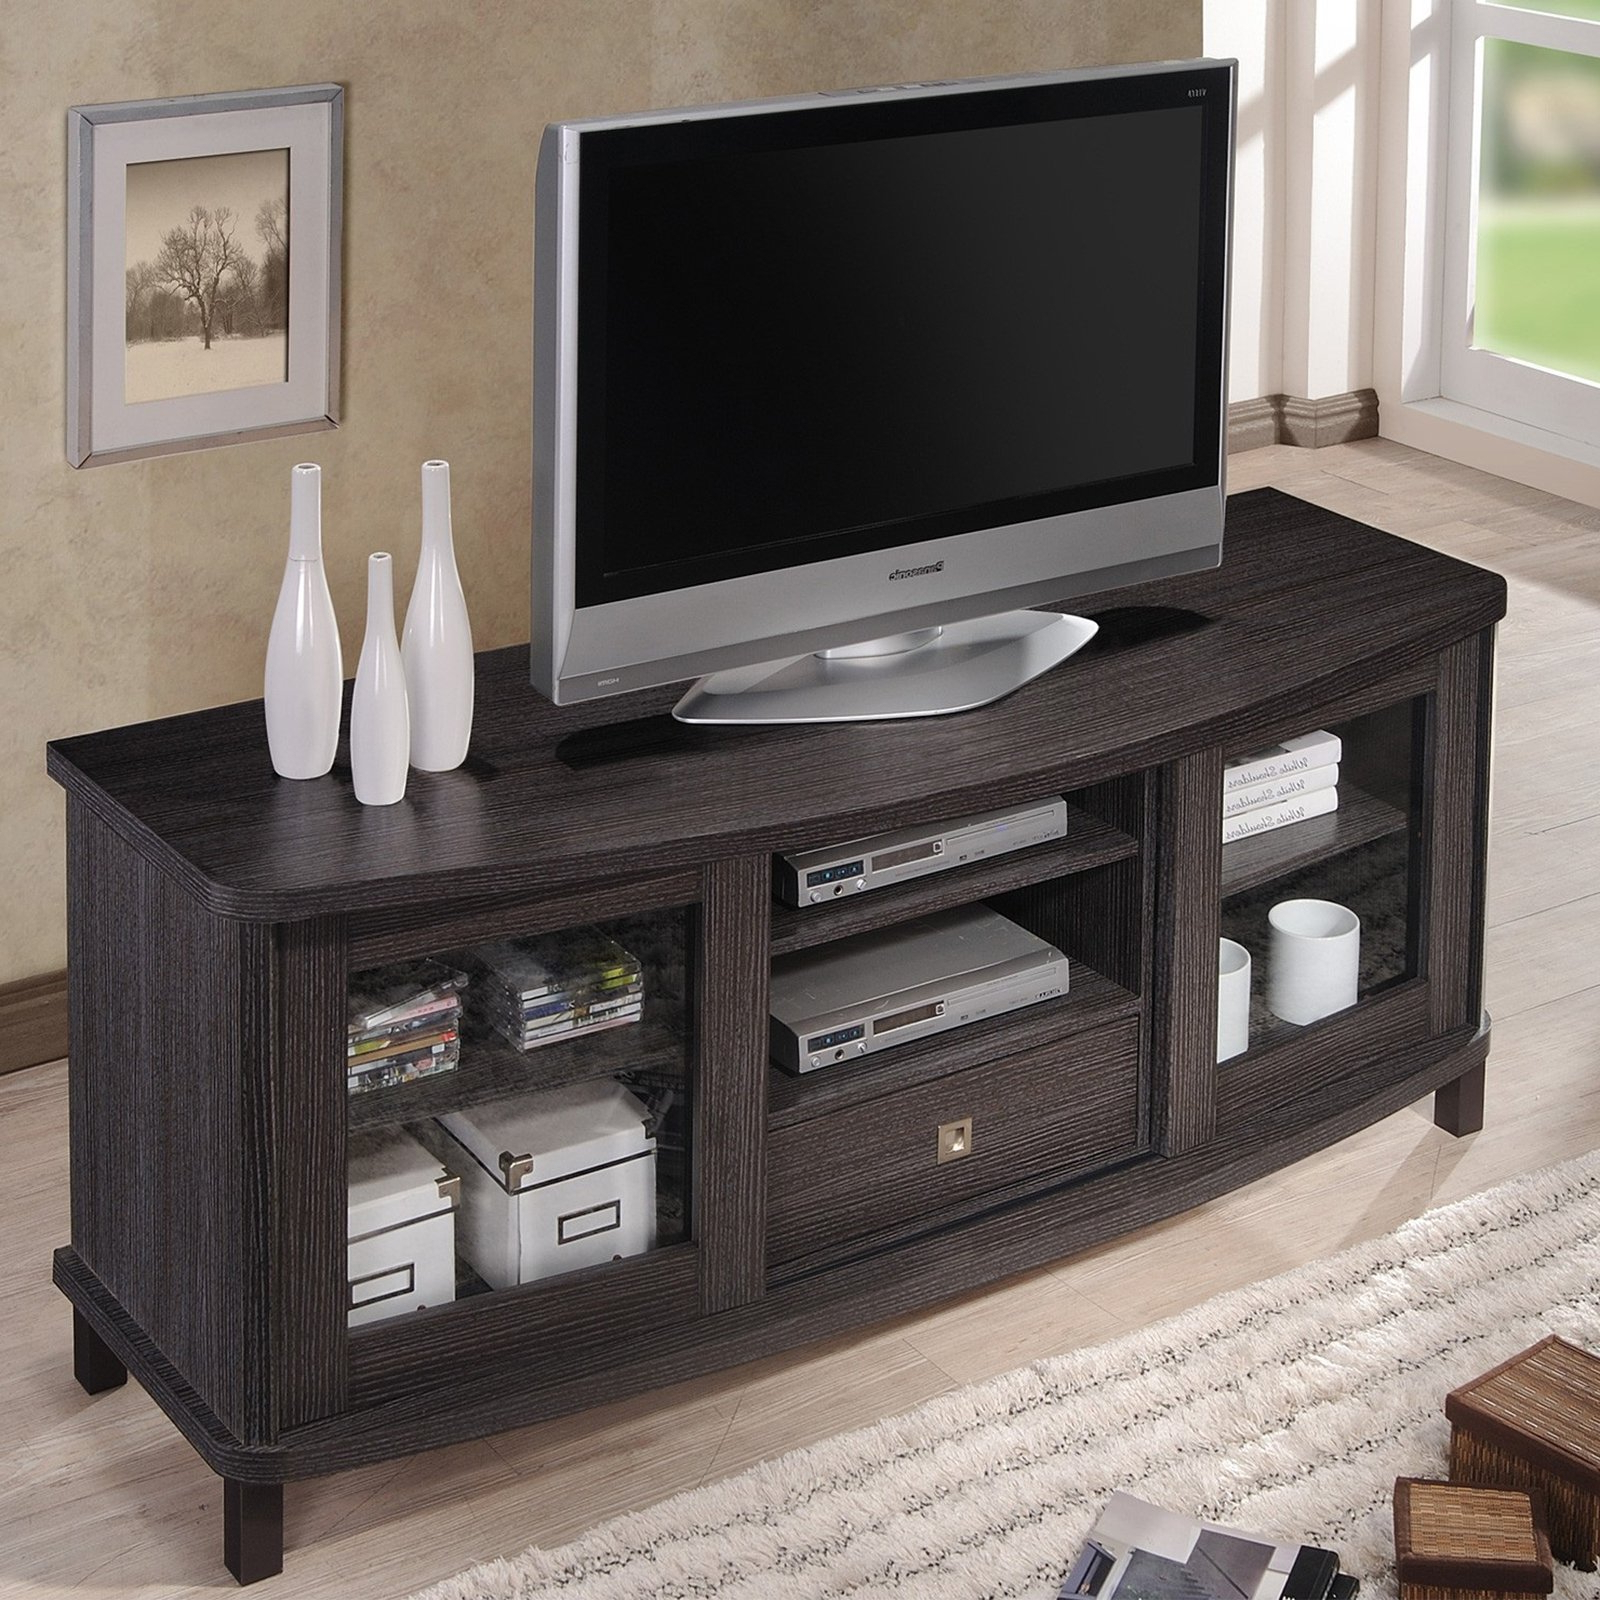 Tv Stands With Drawer And Cabinets Pertaining To 2018 Baxton Studio Walda 60 Inch Dark Brown Wood Tv Cabinet (View 1 of 10)